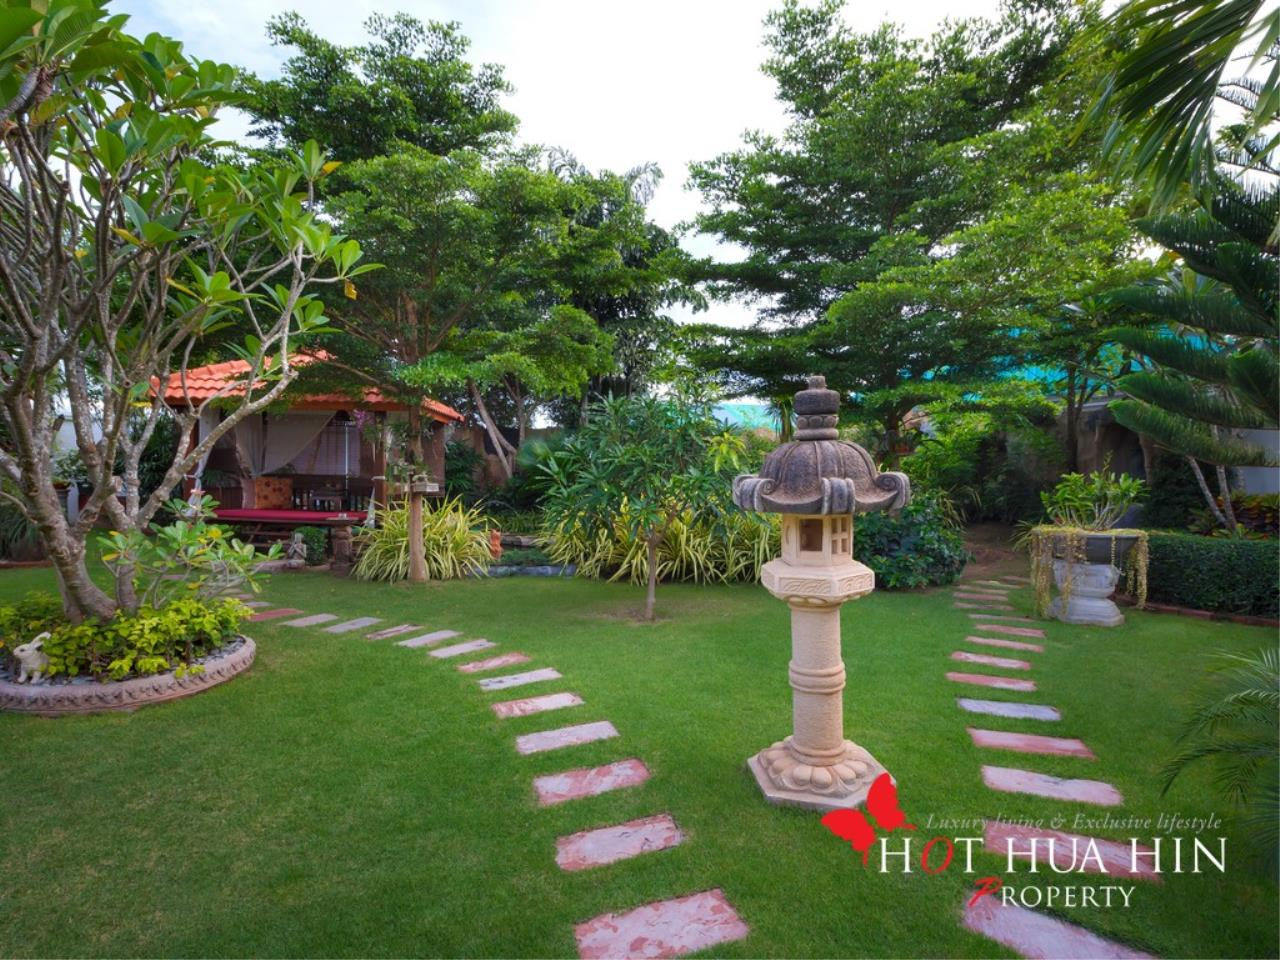 Hot Hua Hin Co. Ltd. Agency's Well Built Home With Stunning Gardens And Two Full Kitchens 30